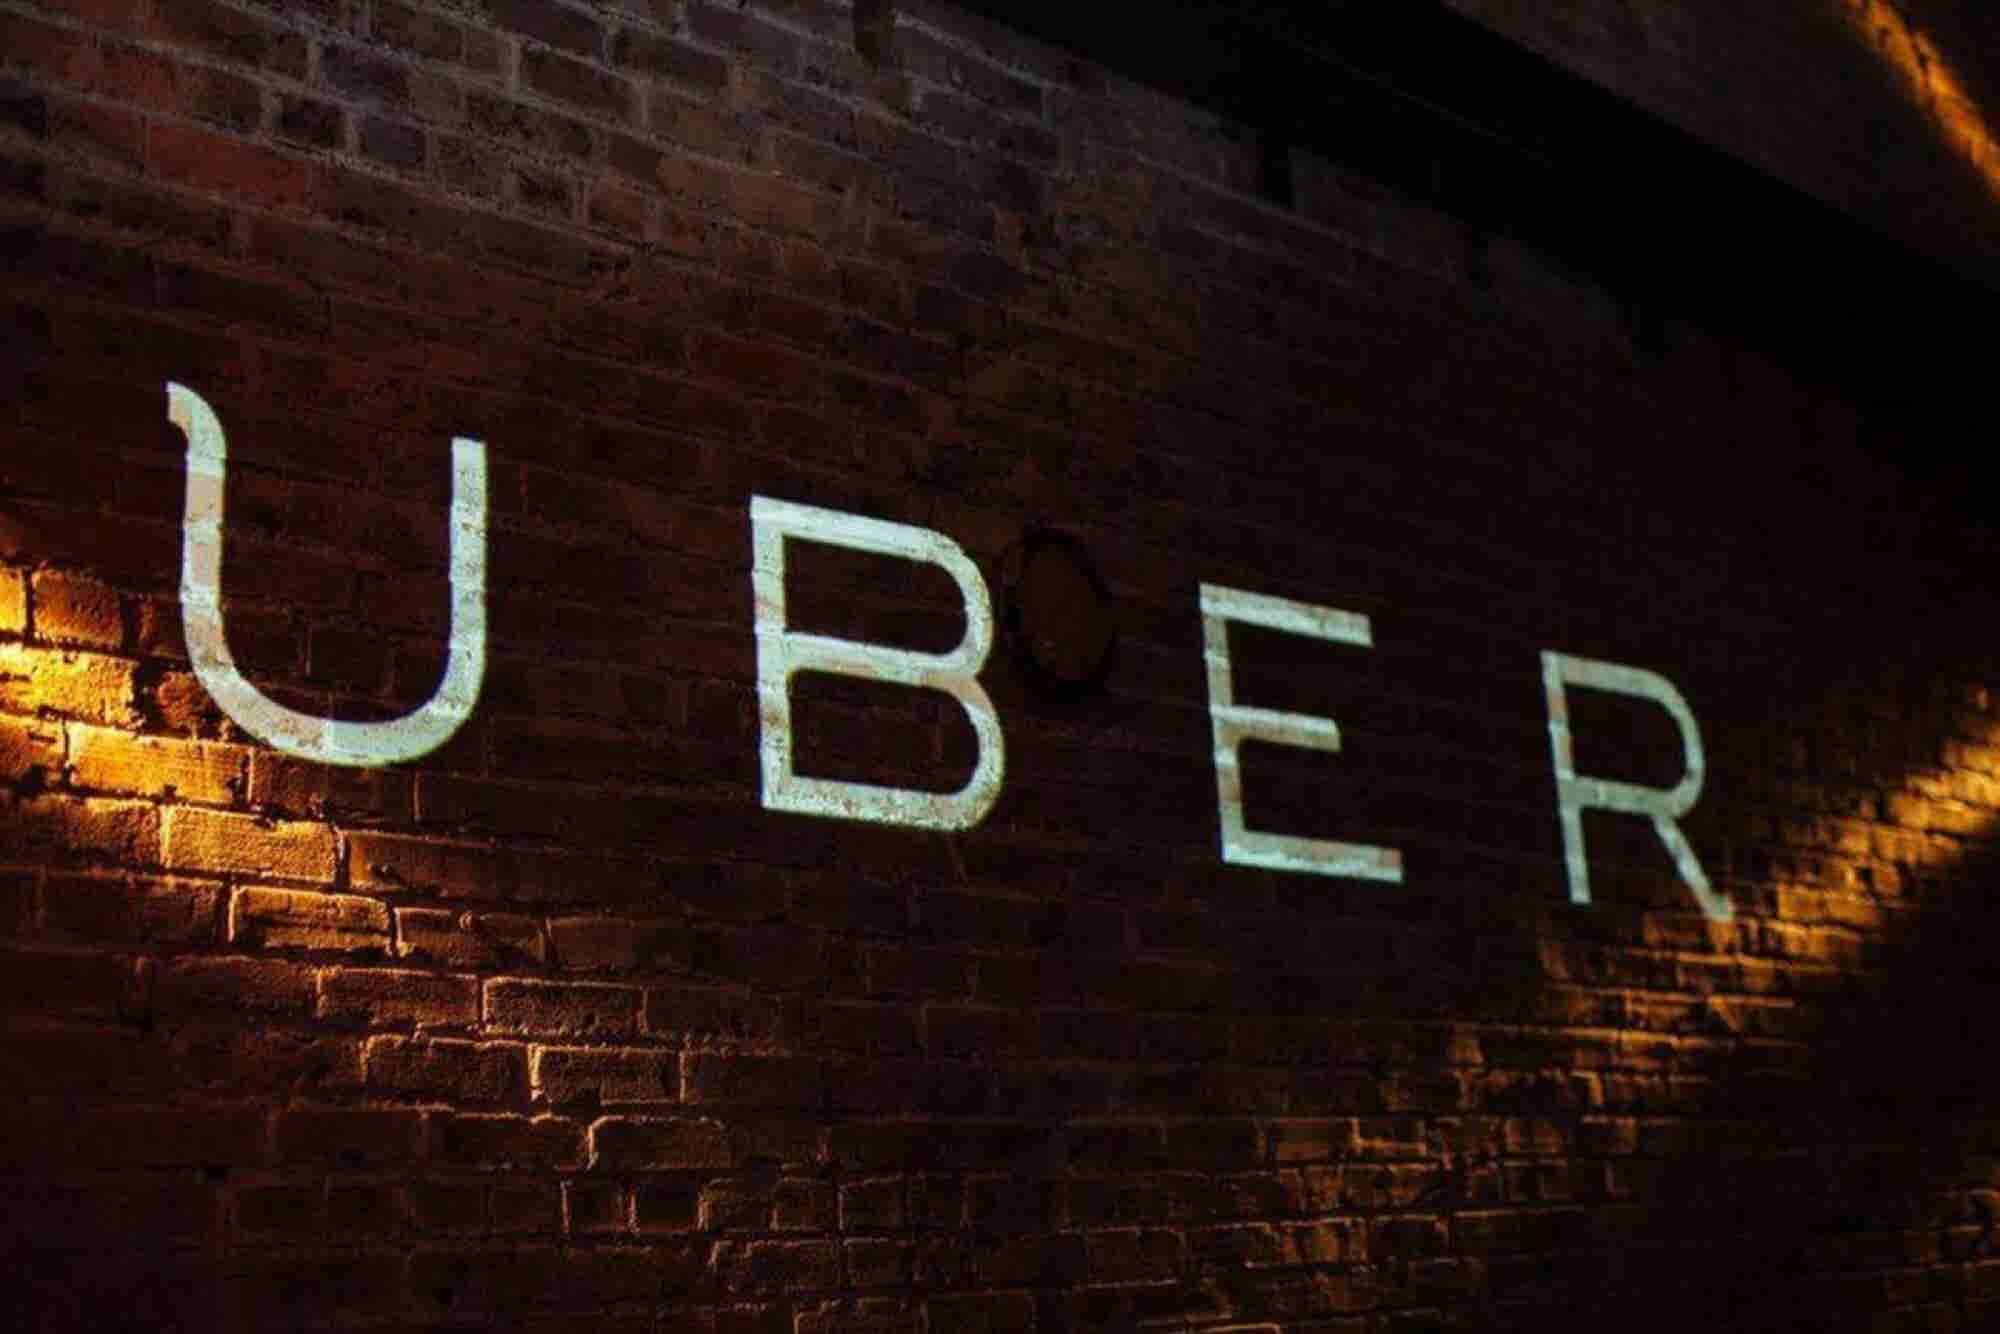 Employee, Not Contractor: What the Uber Ruling Means for the Sharing E...